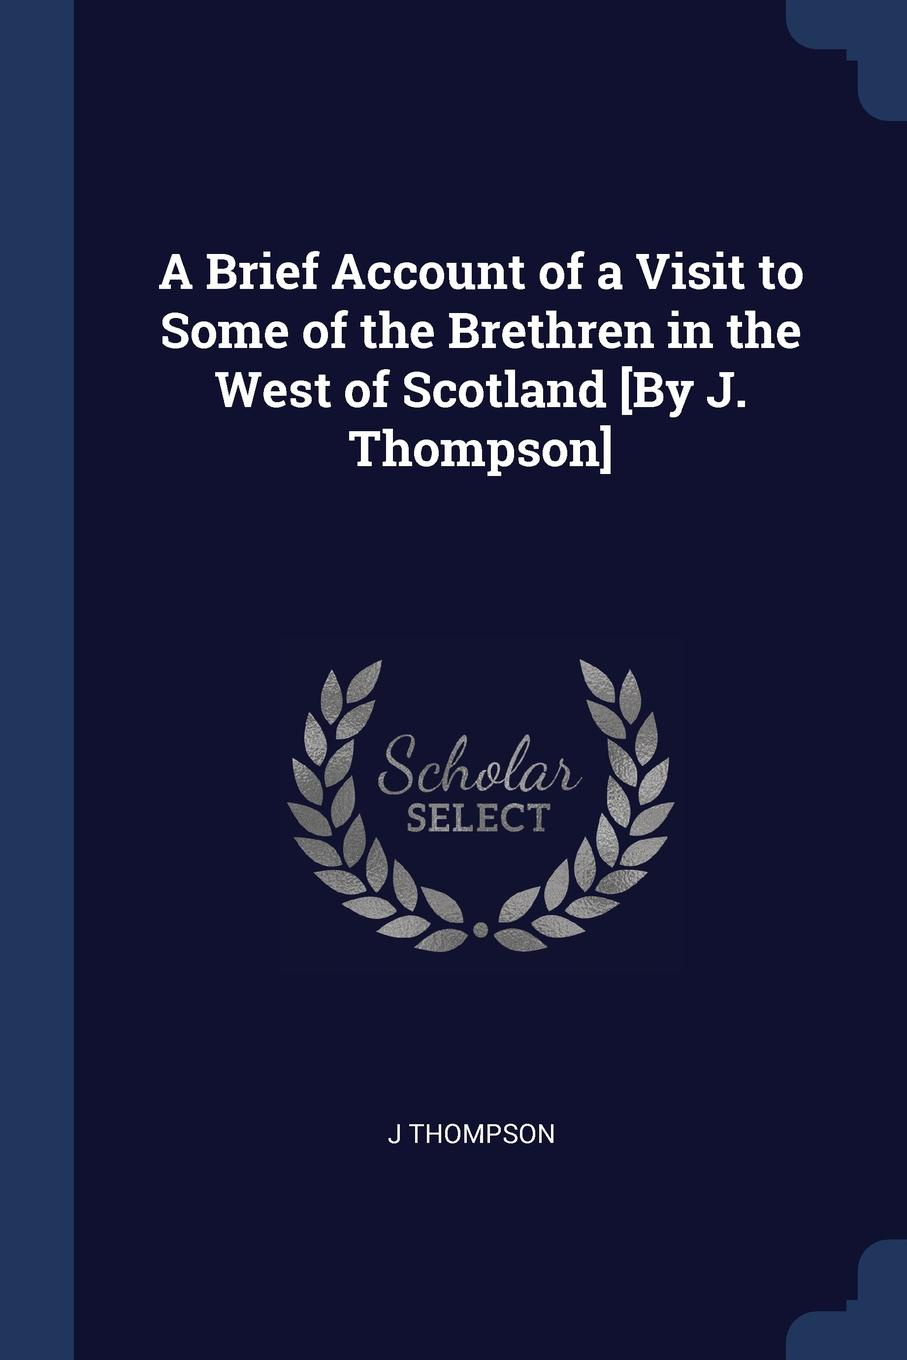 A Brief Account of a Visit to Some of the Brethren in the West of Scotland .By J. Thompson.